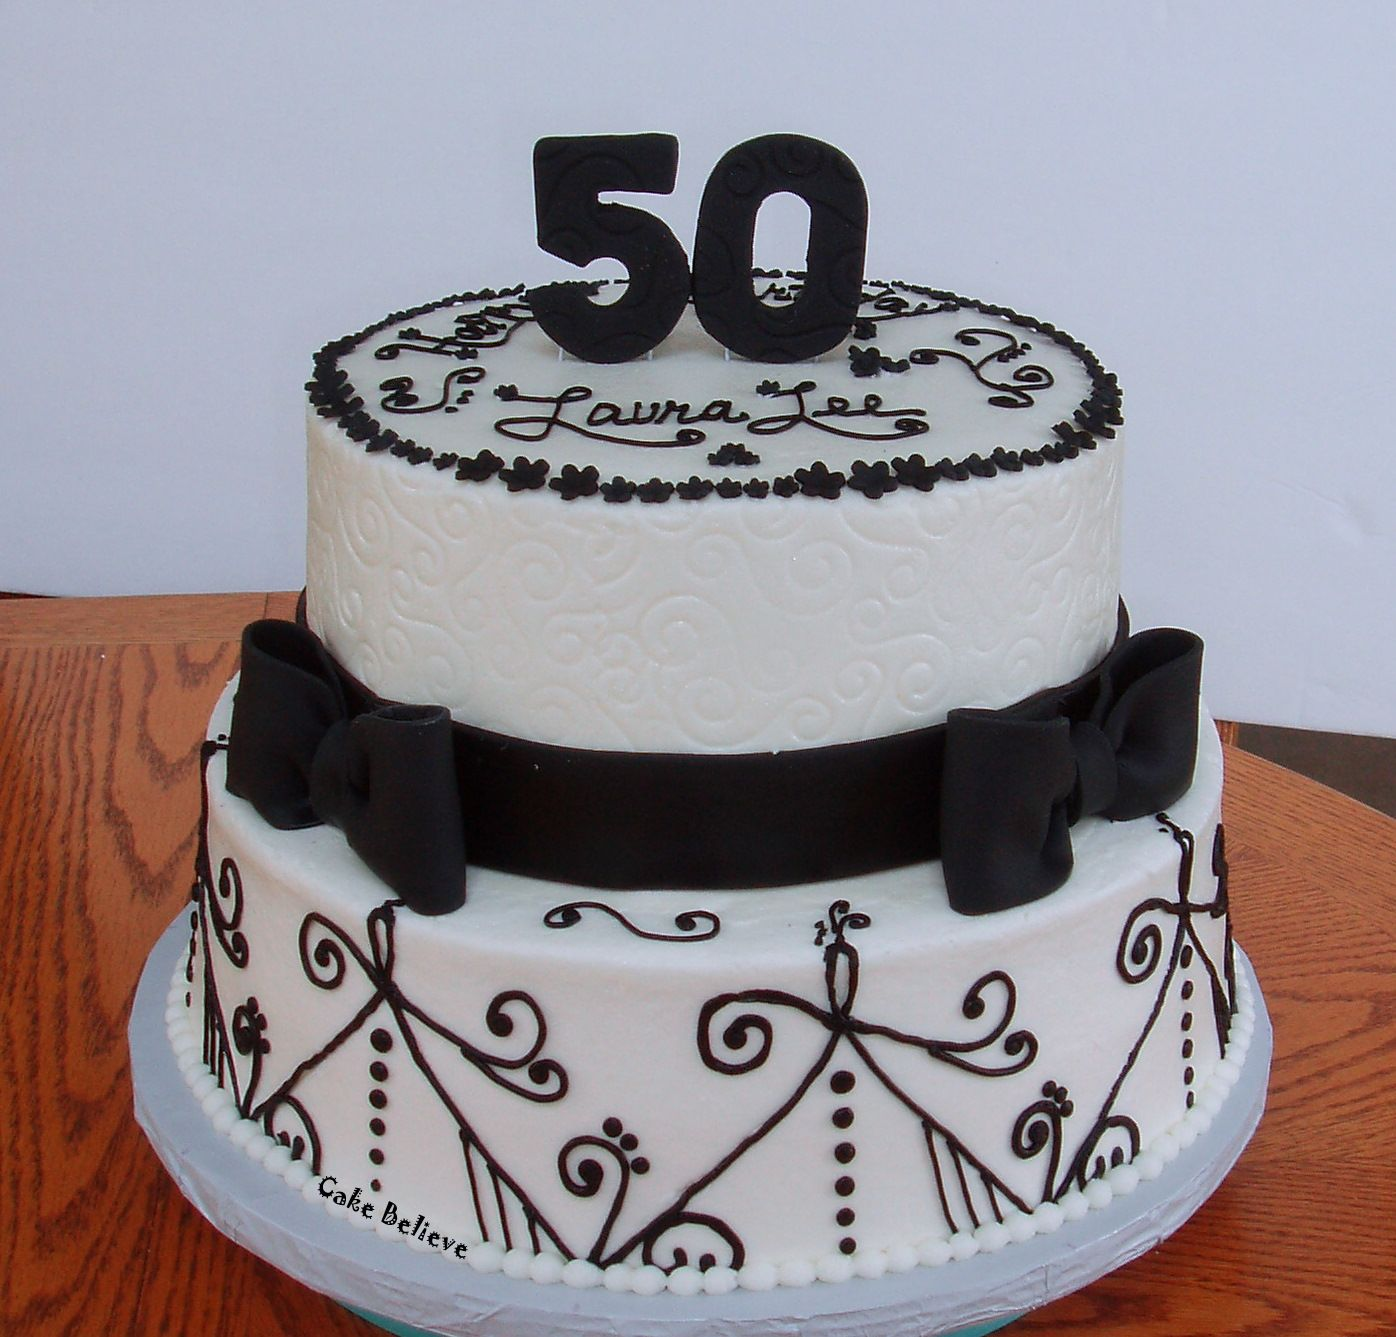 50th Birthday Cake In Black And White Coloring With Unique